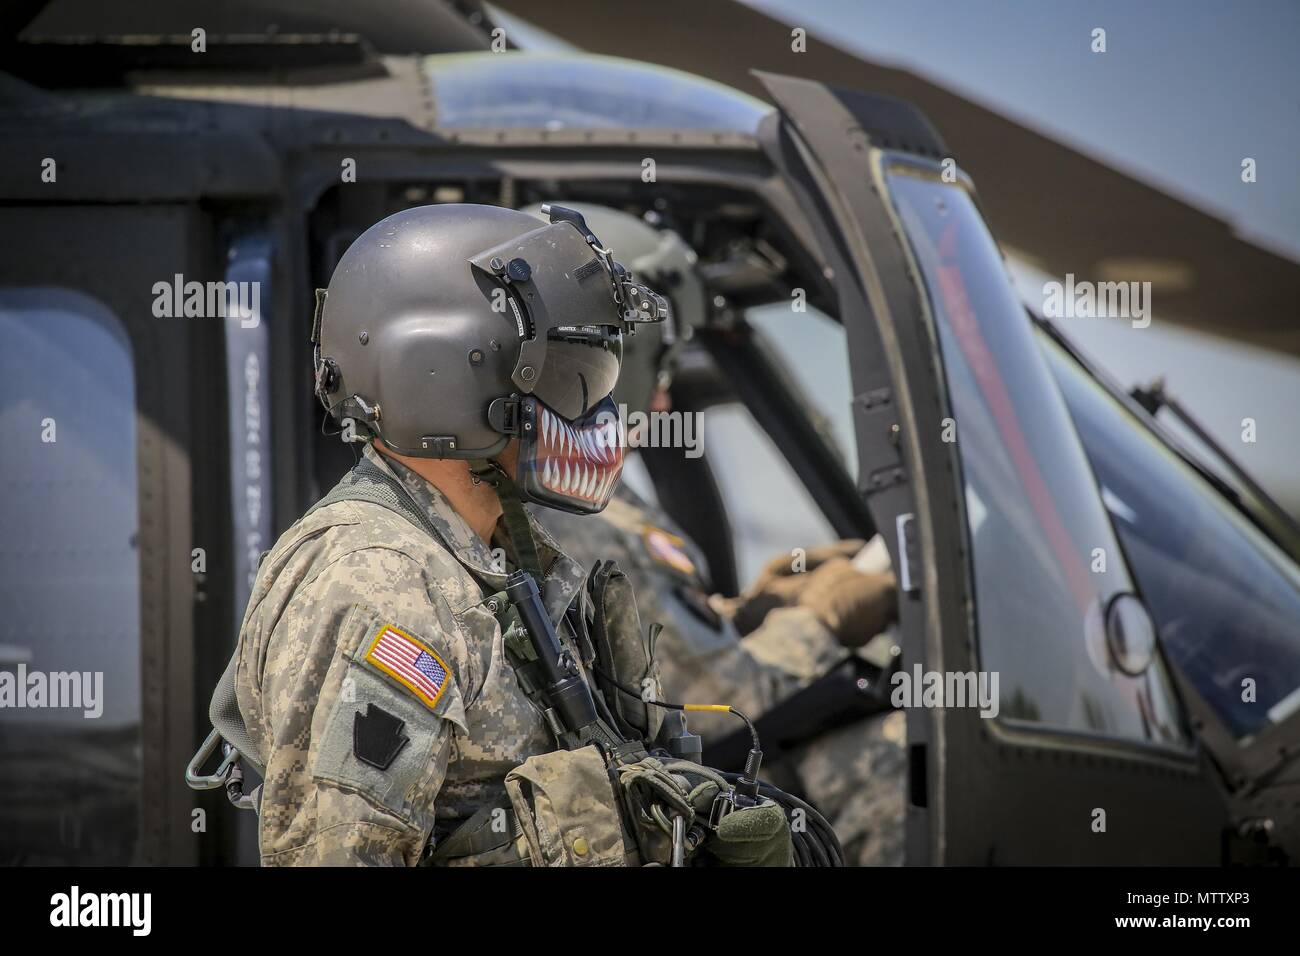 New Jersey Army National Guard Sgt. Daniel Rivera, a UH-60L Black Hawk helicopter crew chief from the 1st Assault Helicopter Battalion, 150th Aviation Regiment, prepares his aircraft for a flight at Joint Base McGuire-Dix-Lakehurst, N.J. May 15, 2018, May 15, 2018. (U.S. Air National Guard photo by Master Sgt. Matt Hecht). () - Stock Image